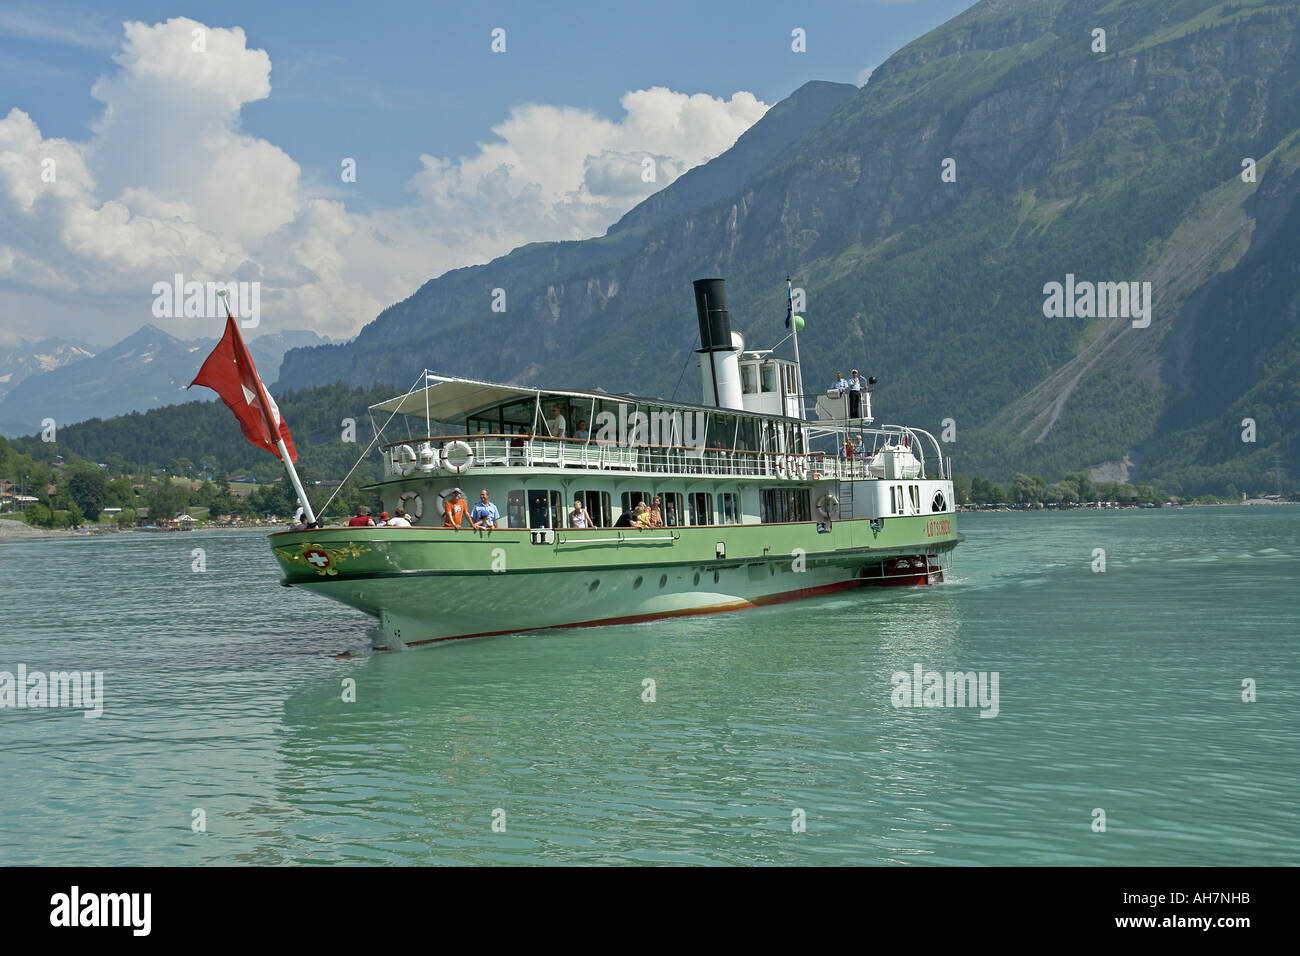 The preserved paddle steamer Lotschberg reversing into berth at Brienz Switzerland on a sunny summer day - Stock Image